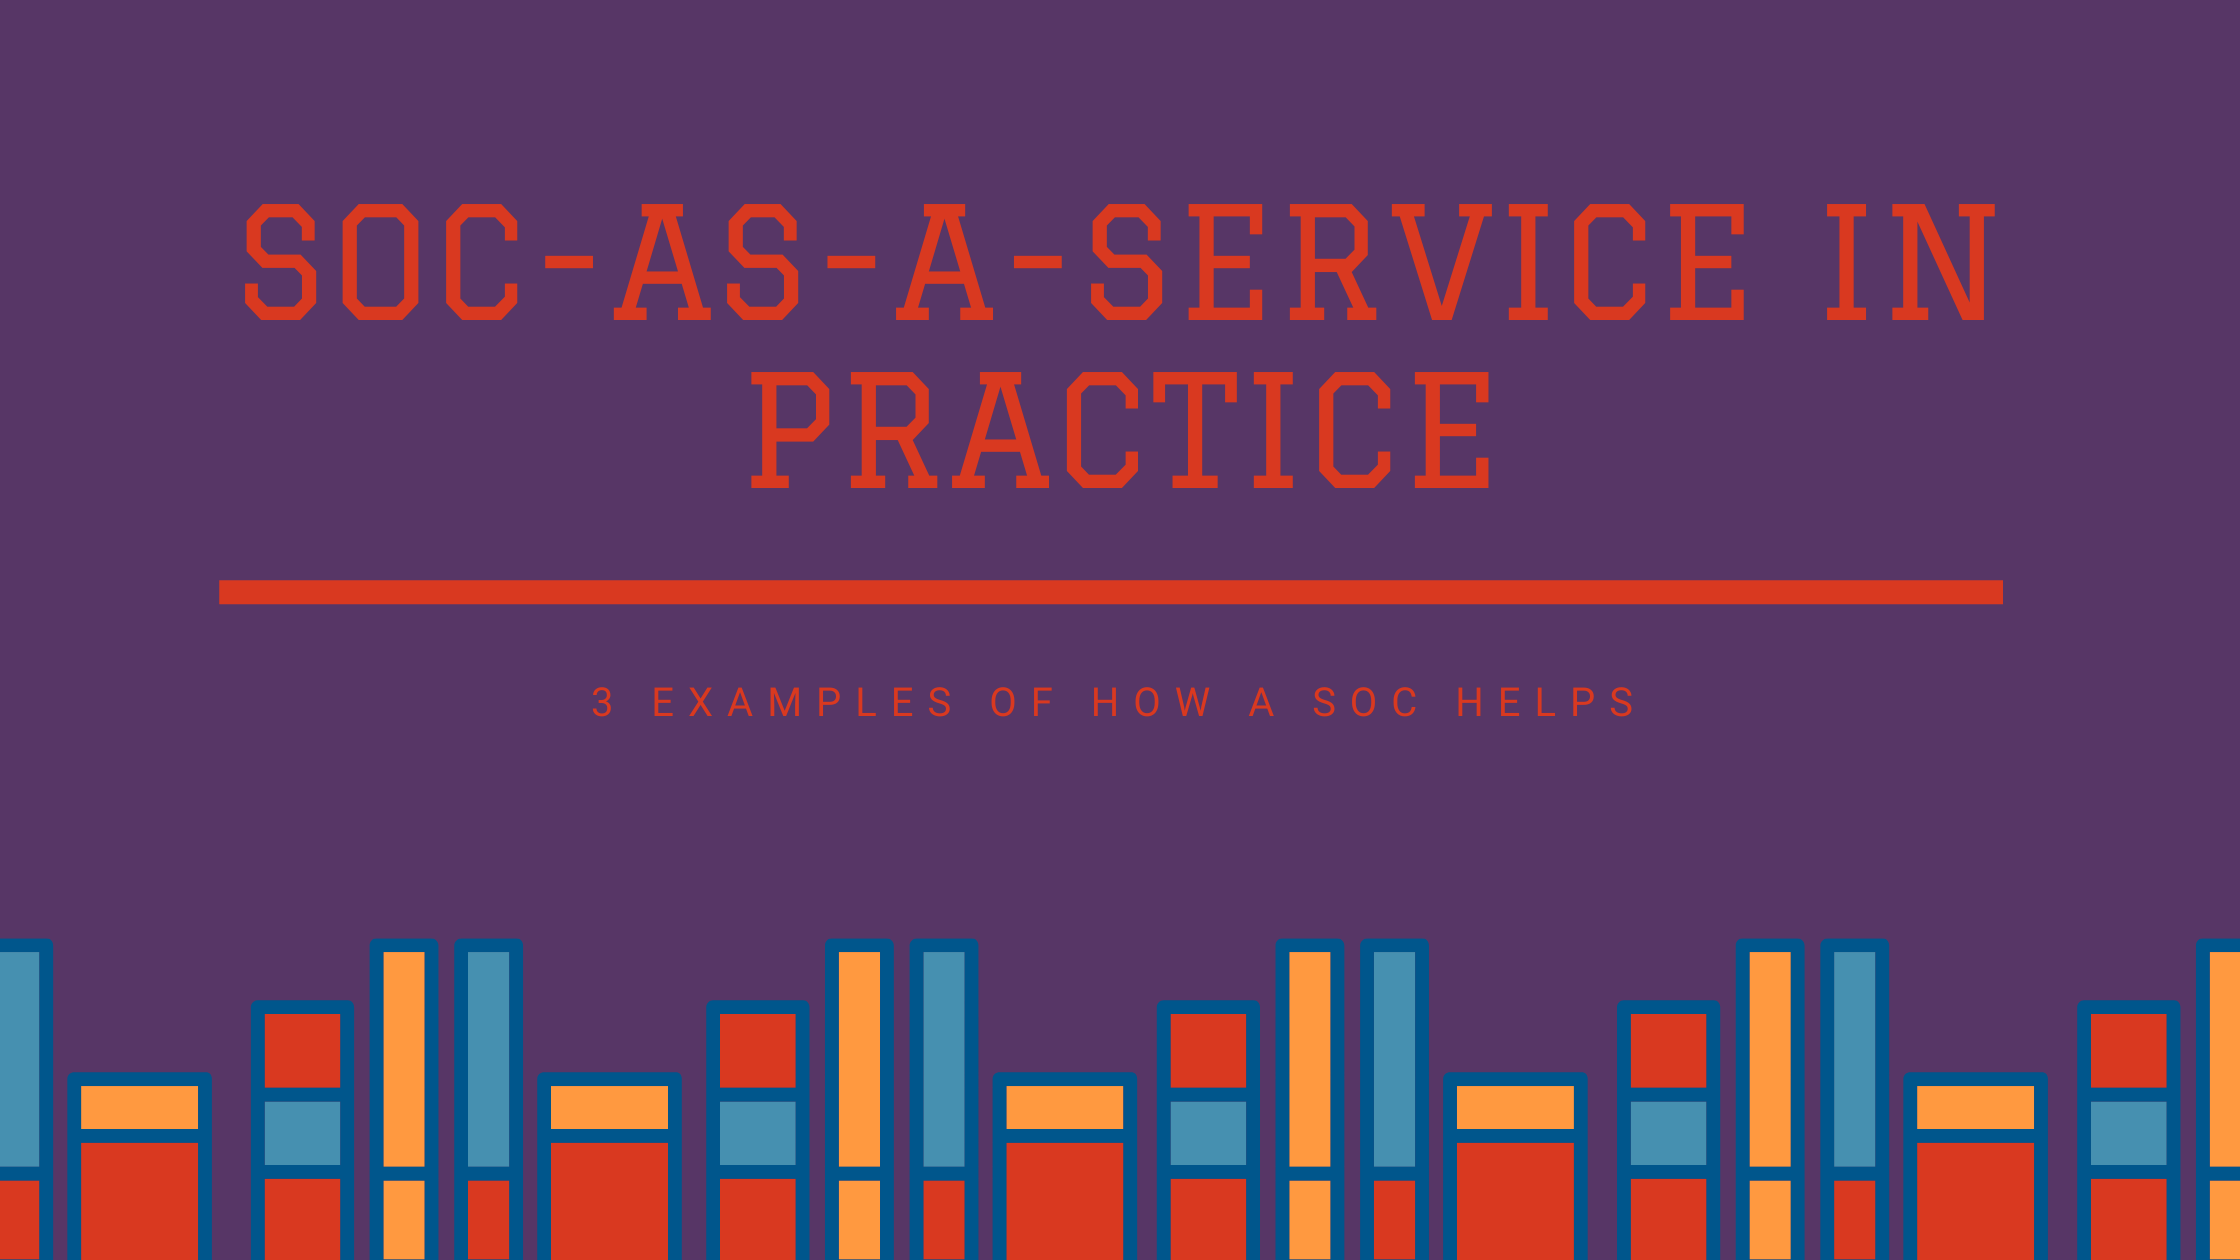 SOC-as-a-Service in Practice